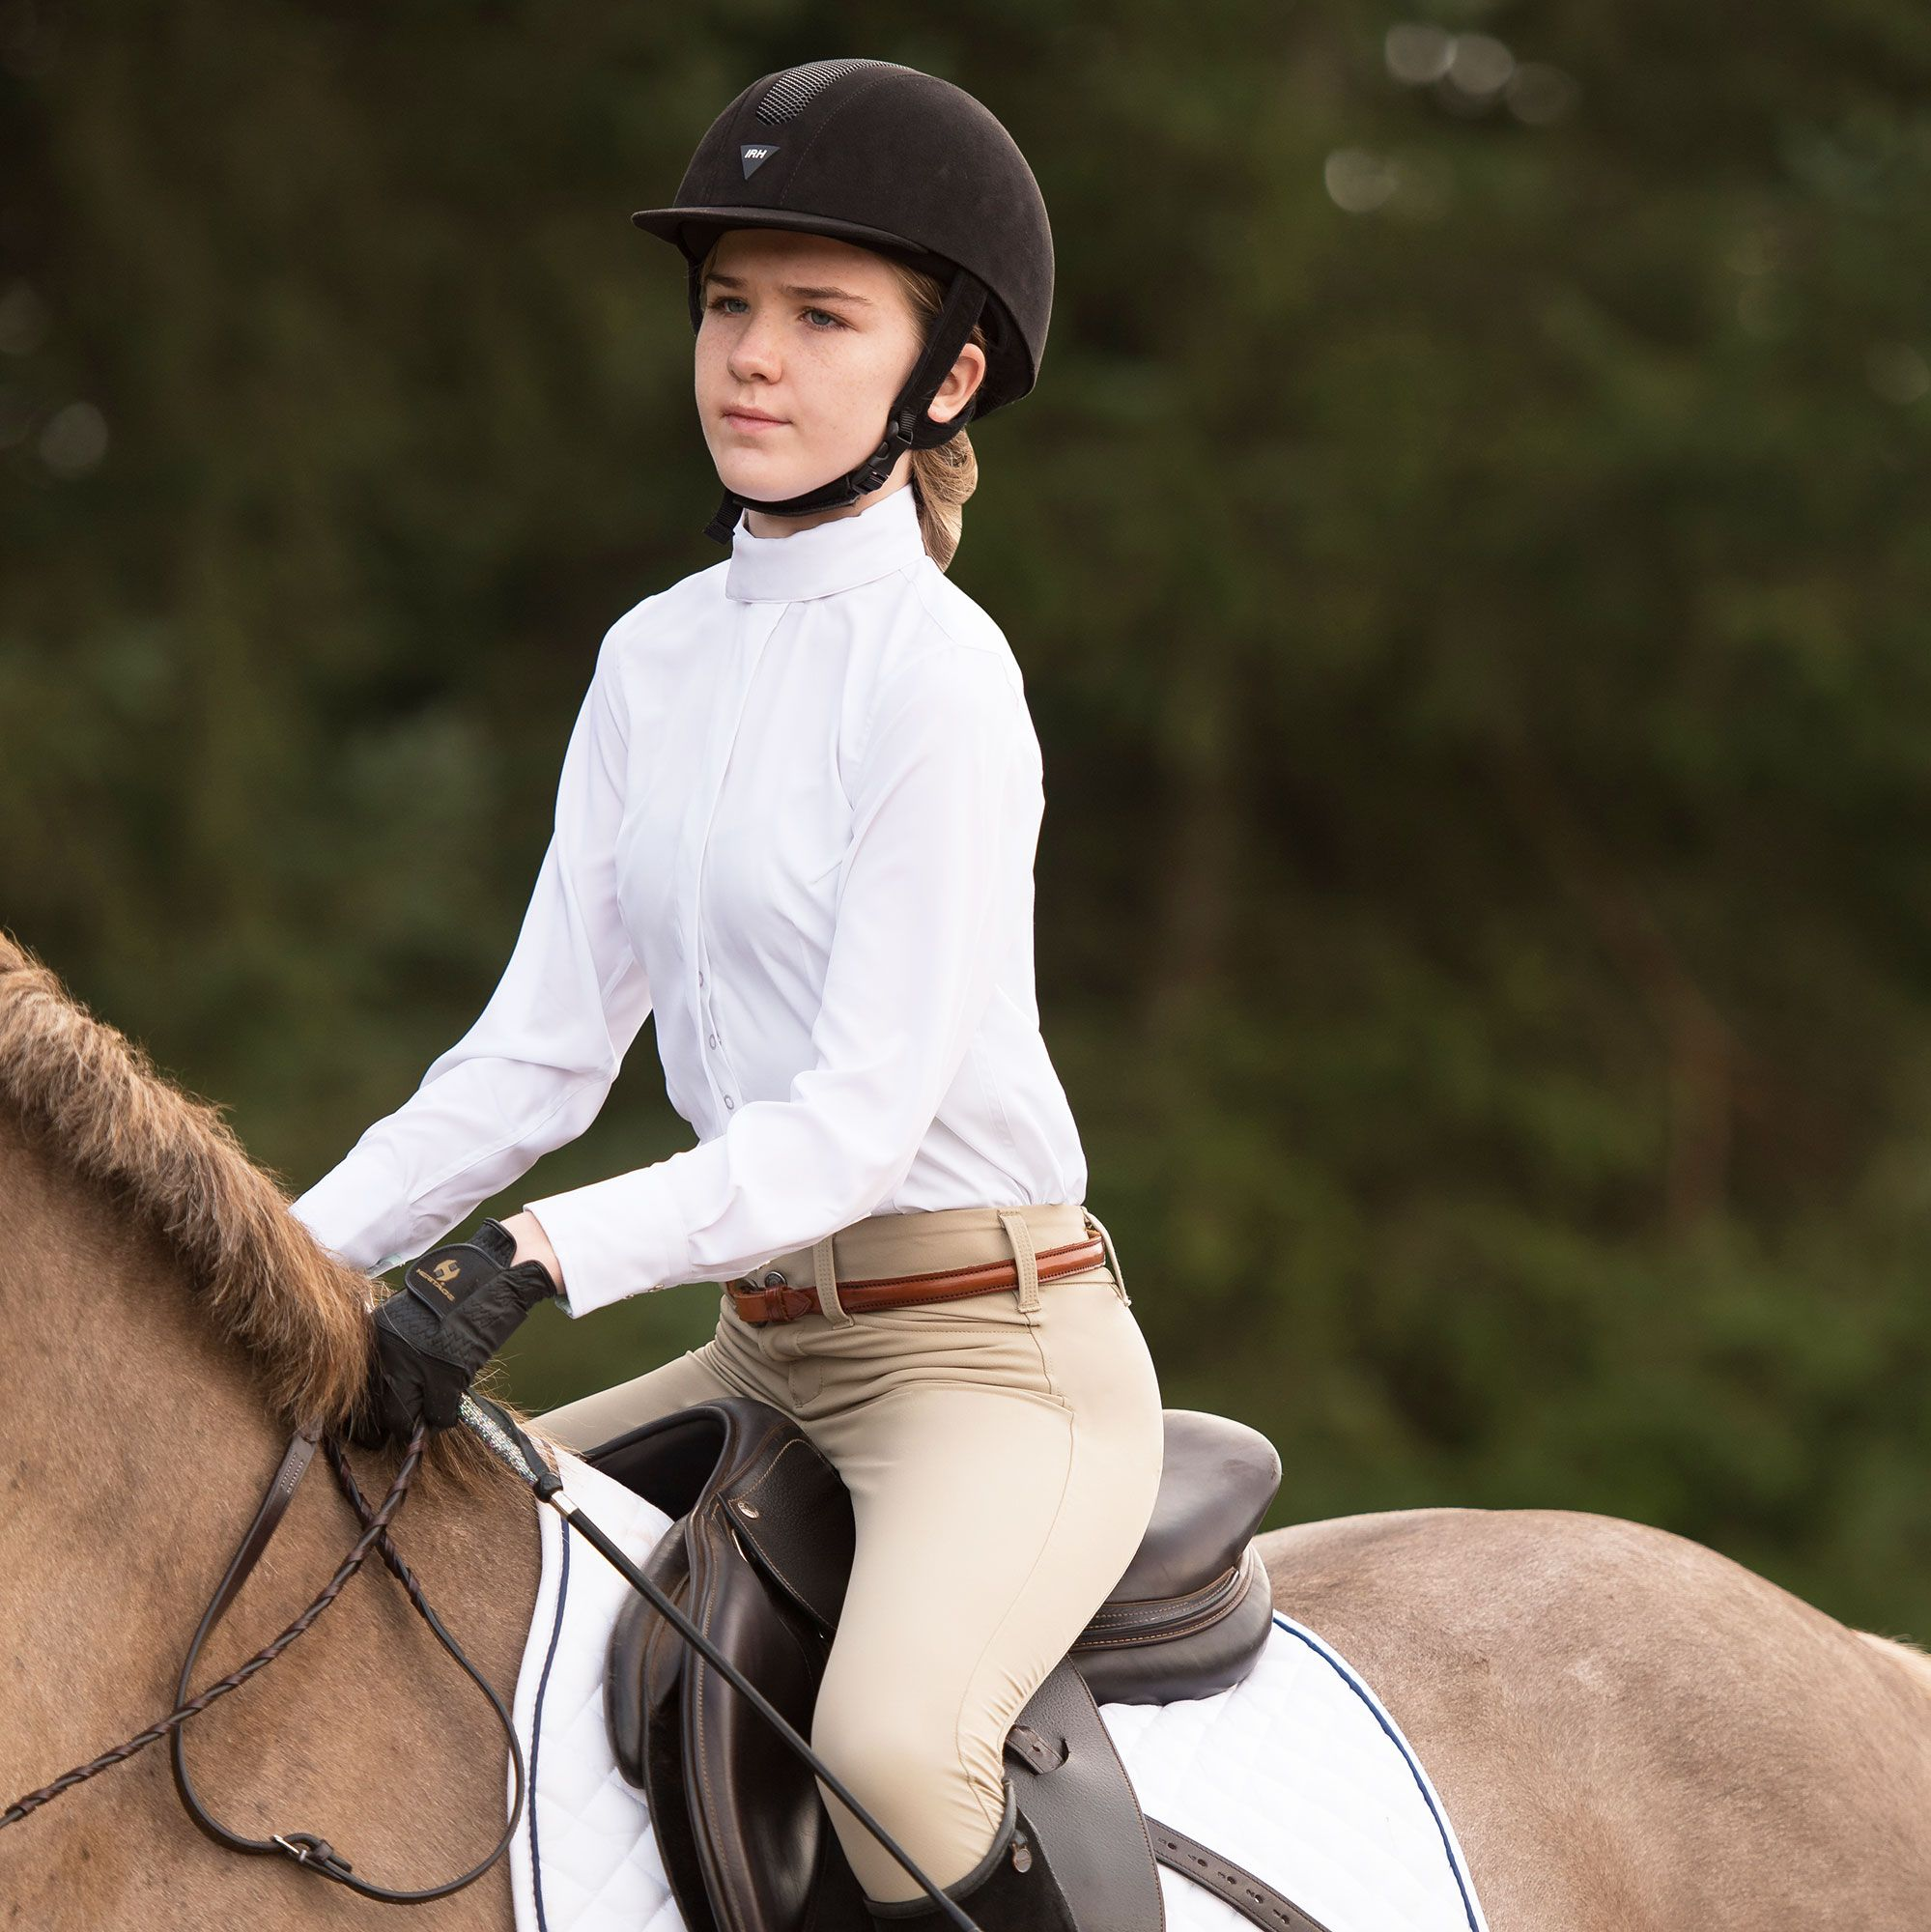 Irideon-Children-039-s-Hampshire-Knee-Patch-Riding-Breeches-with-Euro-Seat-Styling miniature 11